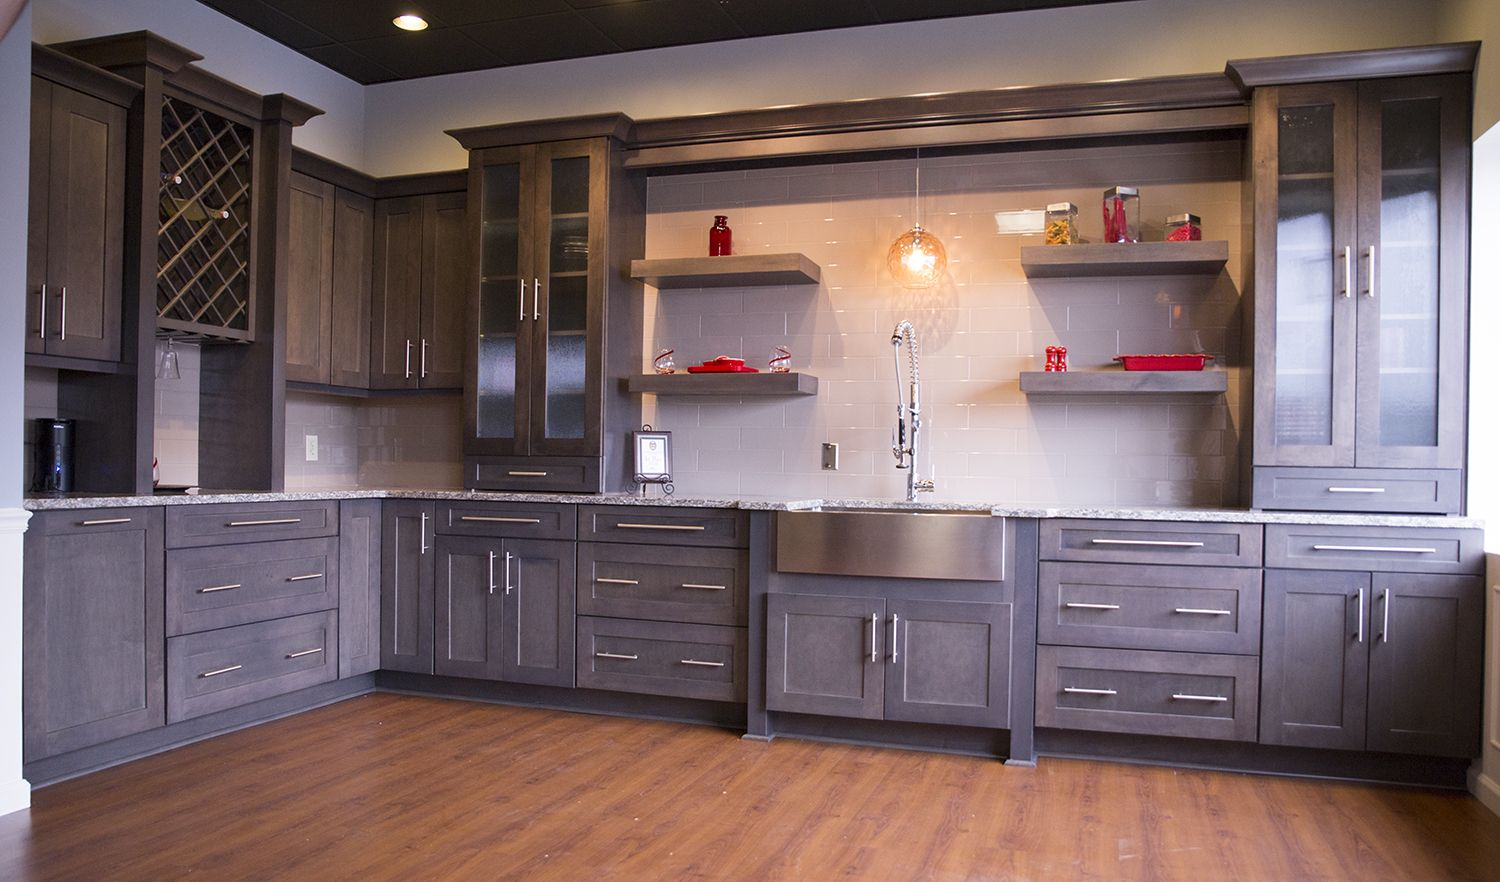 Melbourne Florida Kitchen And Bath Cabinets And Countertops Hammond Kitch Cost Of Kitchen Cabinets Kitchen And Bath Remodeling Kitchen Cabinets And Countertops